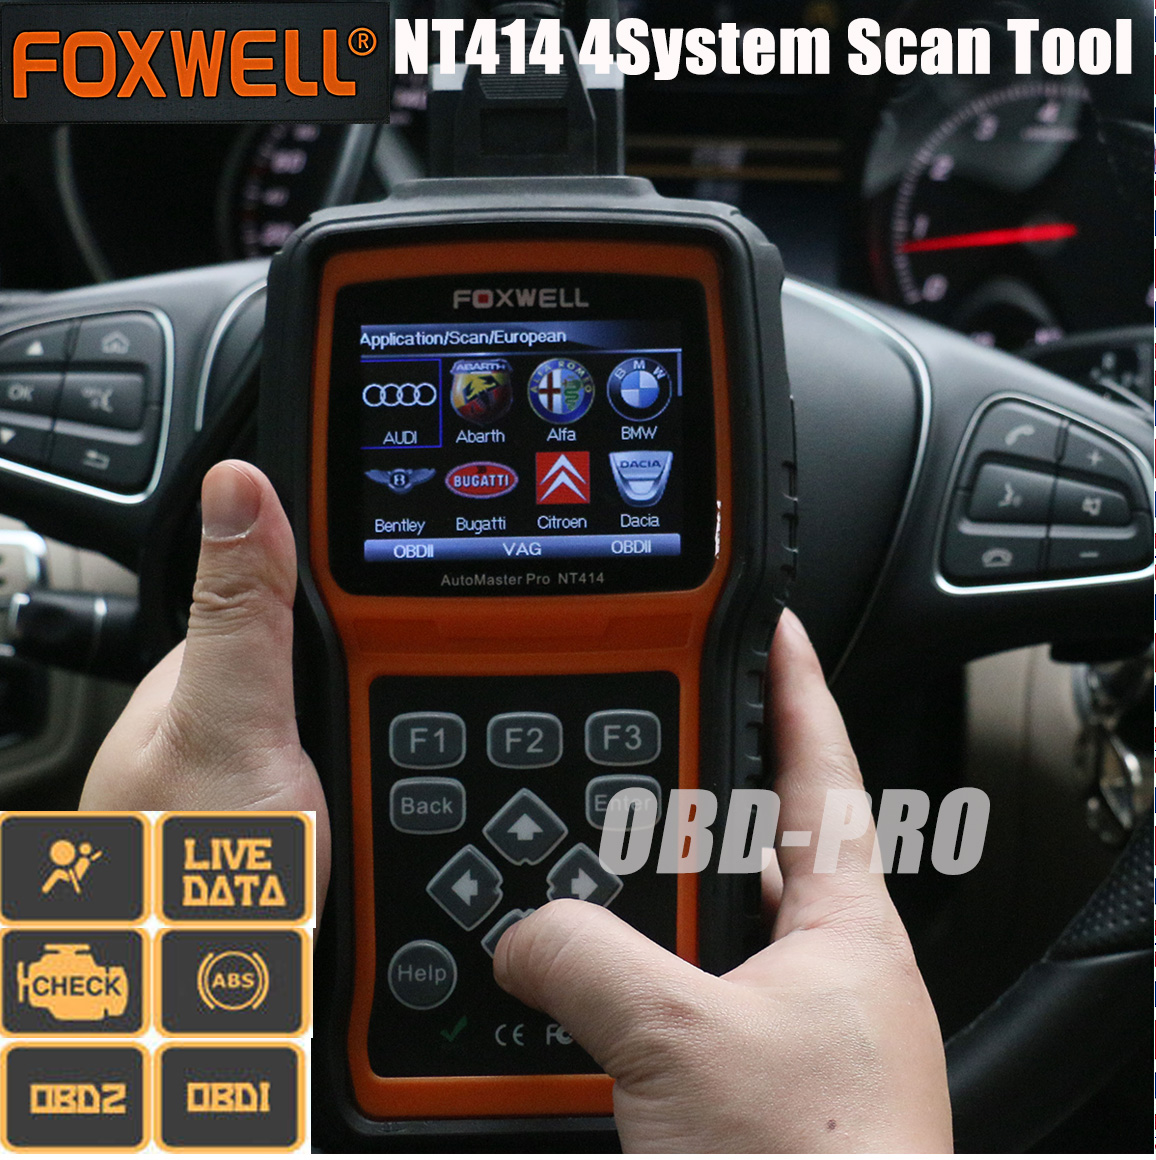 Details about Foxwell Pro NT414 4 System Engine ABS Airbag Fault Diagnostic  Scan Tool Makes